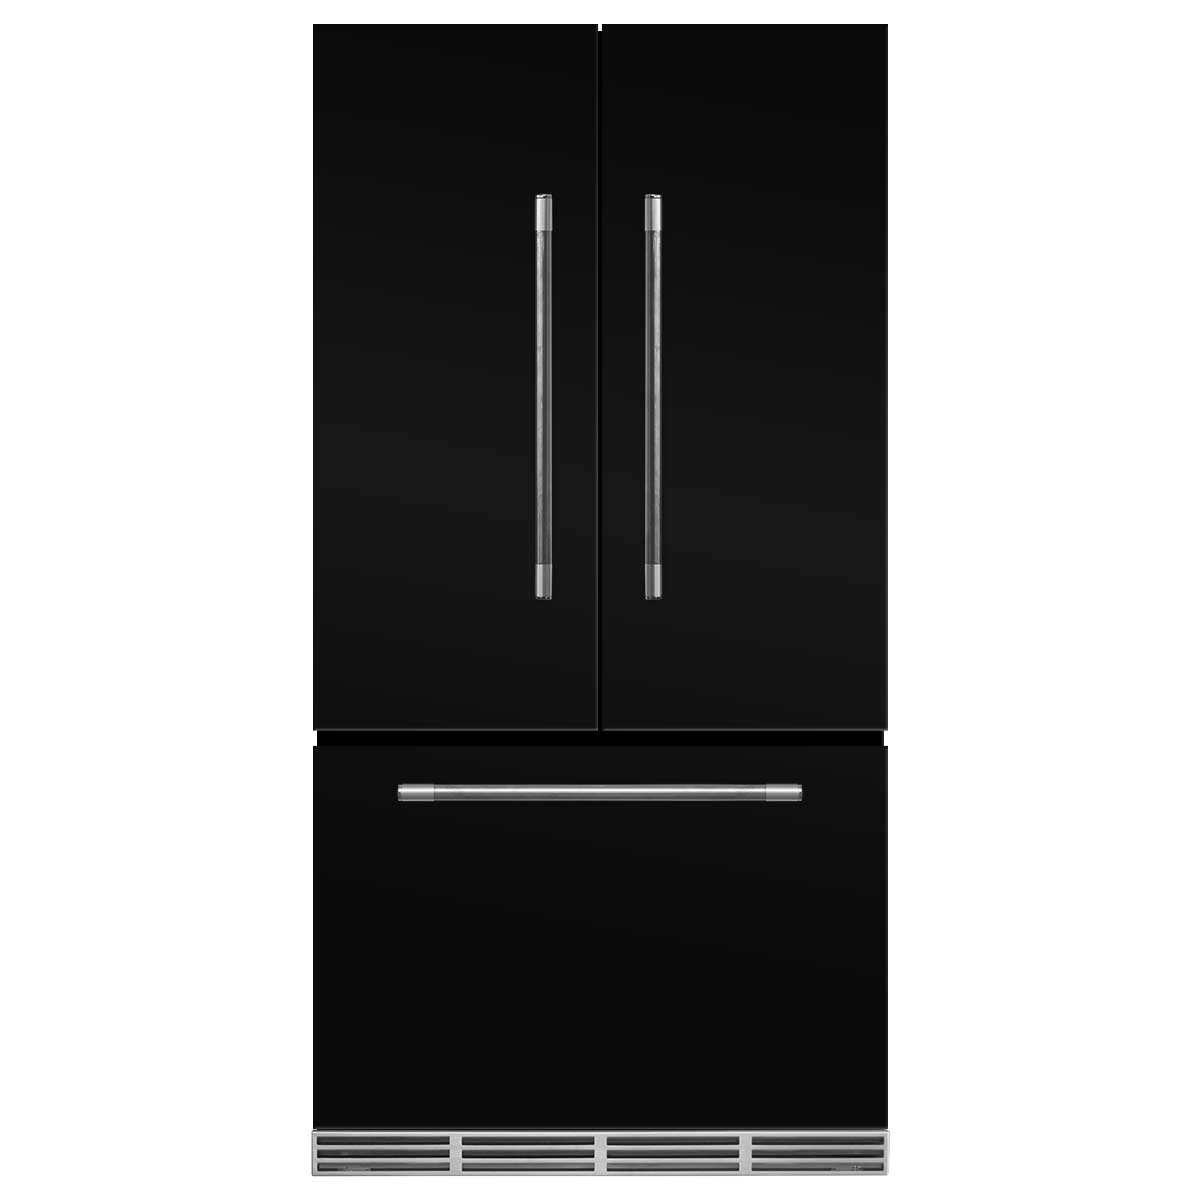 Marvel Mercury French Door Counter-Depth Refrigerator- Marvel Mercury French Door Refrigerator Matt Black